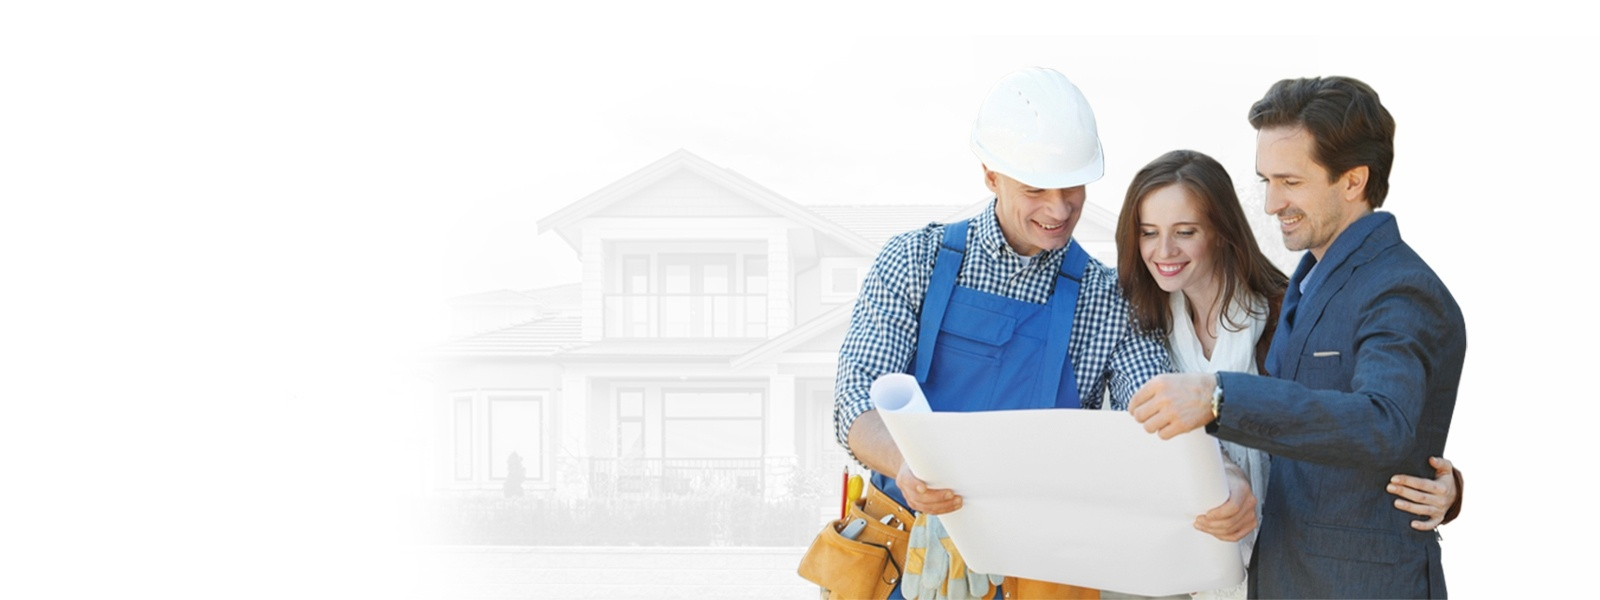 Improving your Existing House or Building Your Dream House - AIMG Inc will help you